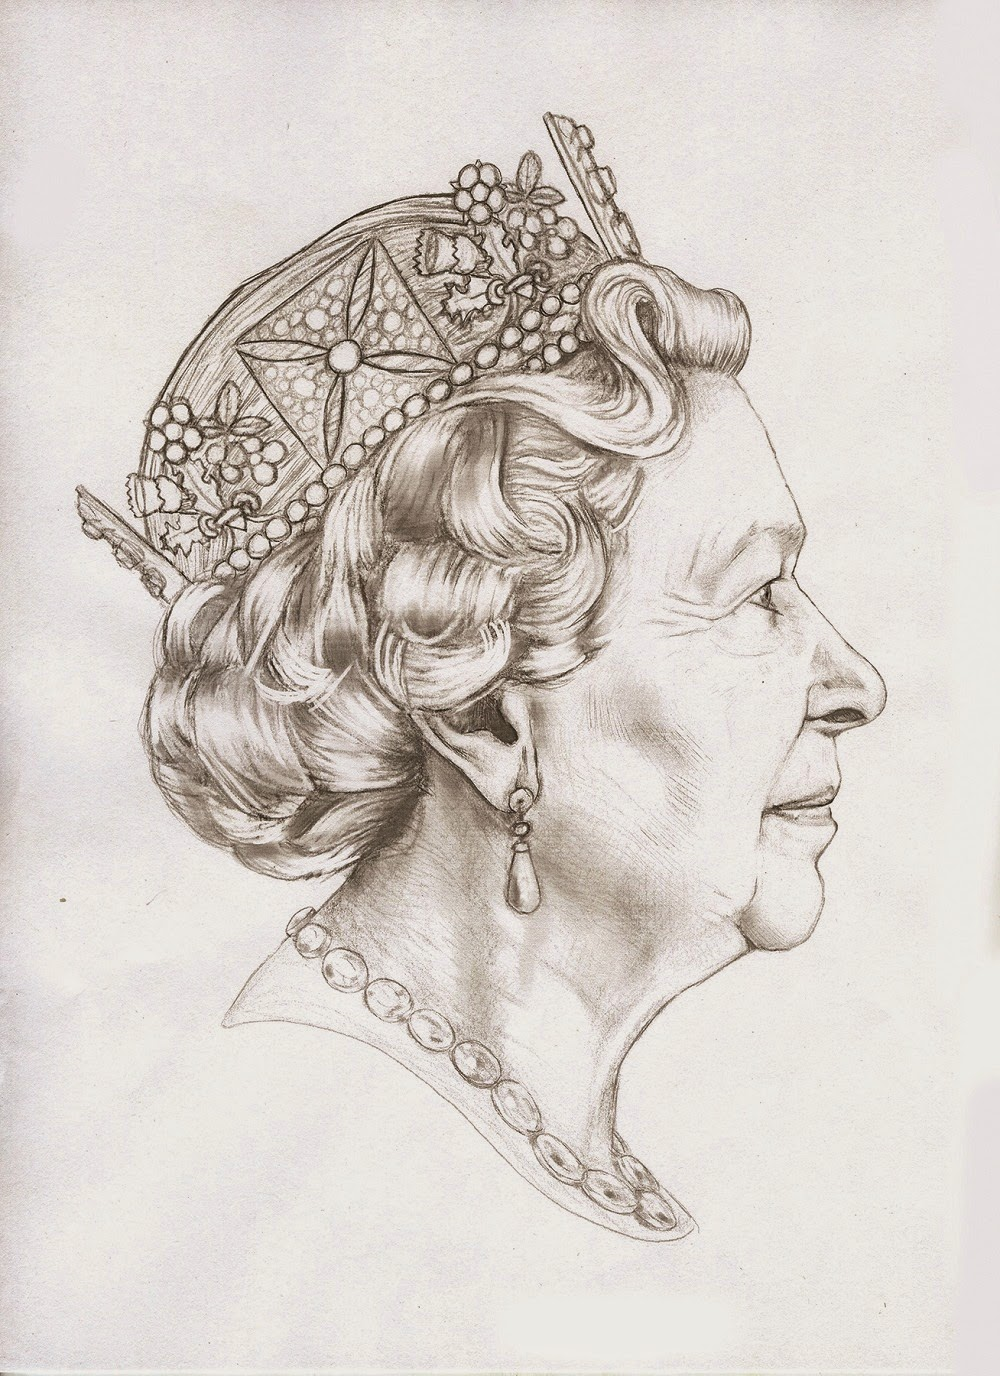 Sketch for Queen Elizabeth's fifth coin portrait